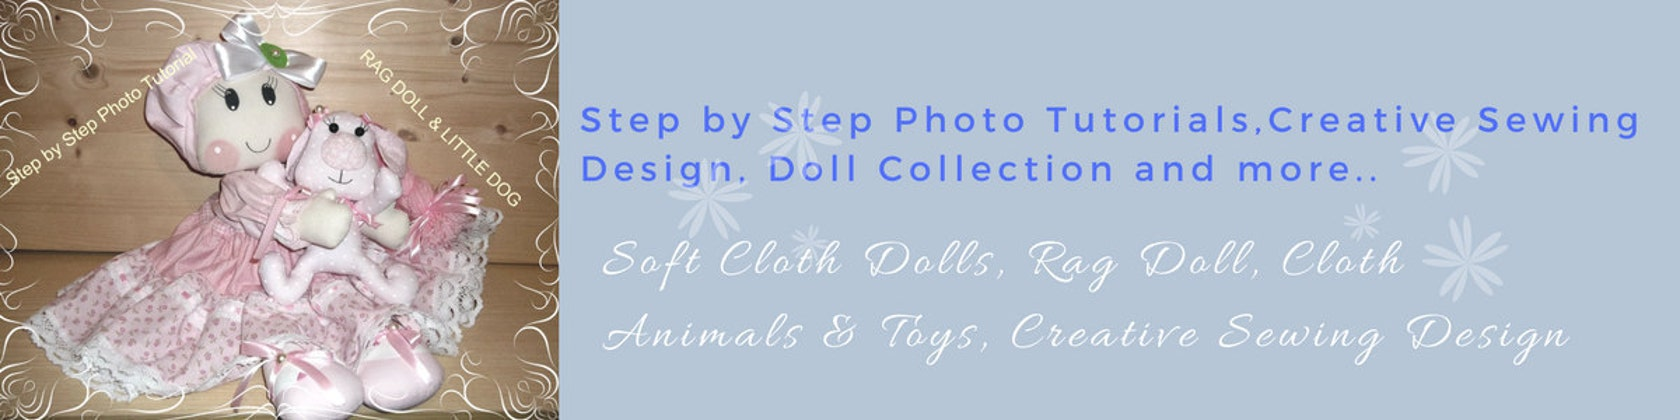 Soft Sculpture Dolls & PDF & Creative Sewing and by Rosselladolls